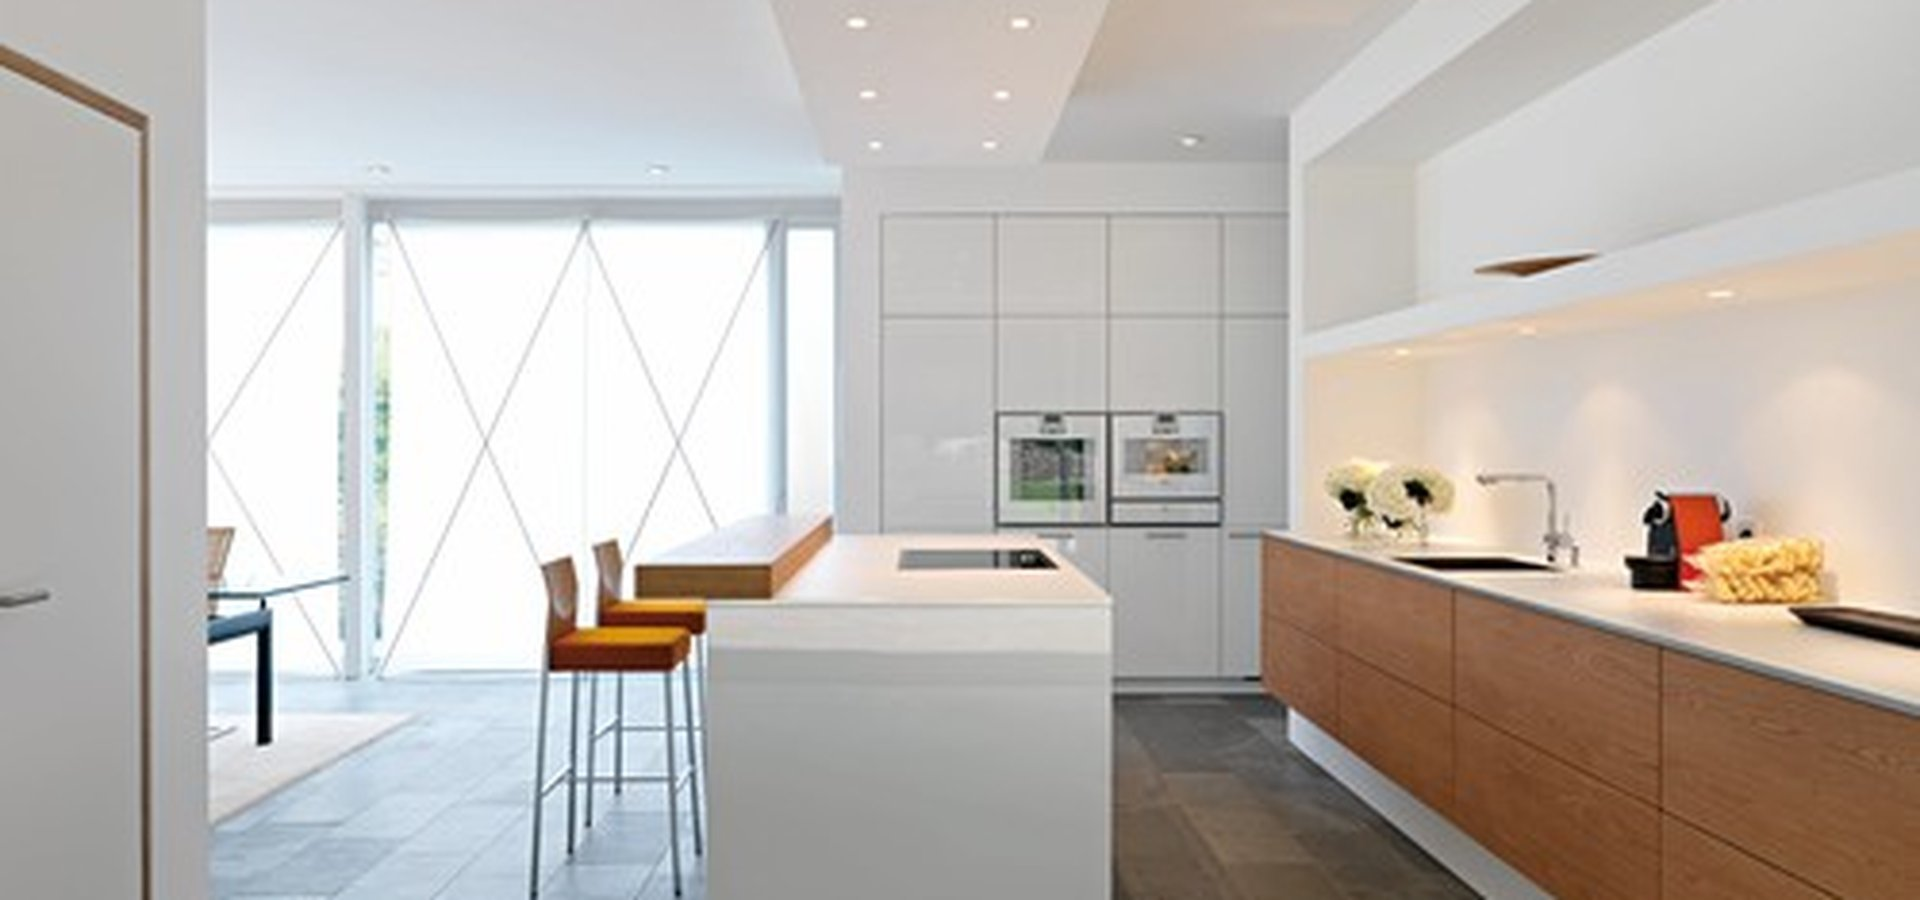 modern-kitchen-3